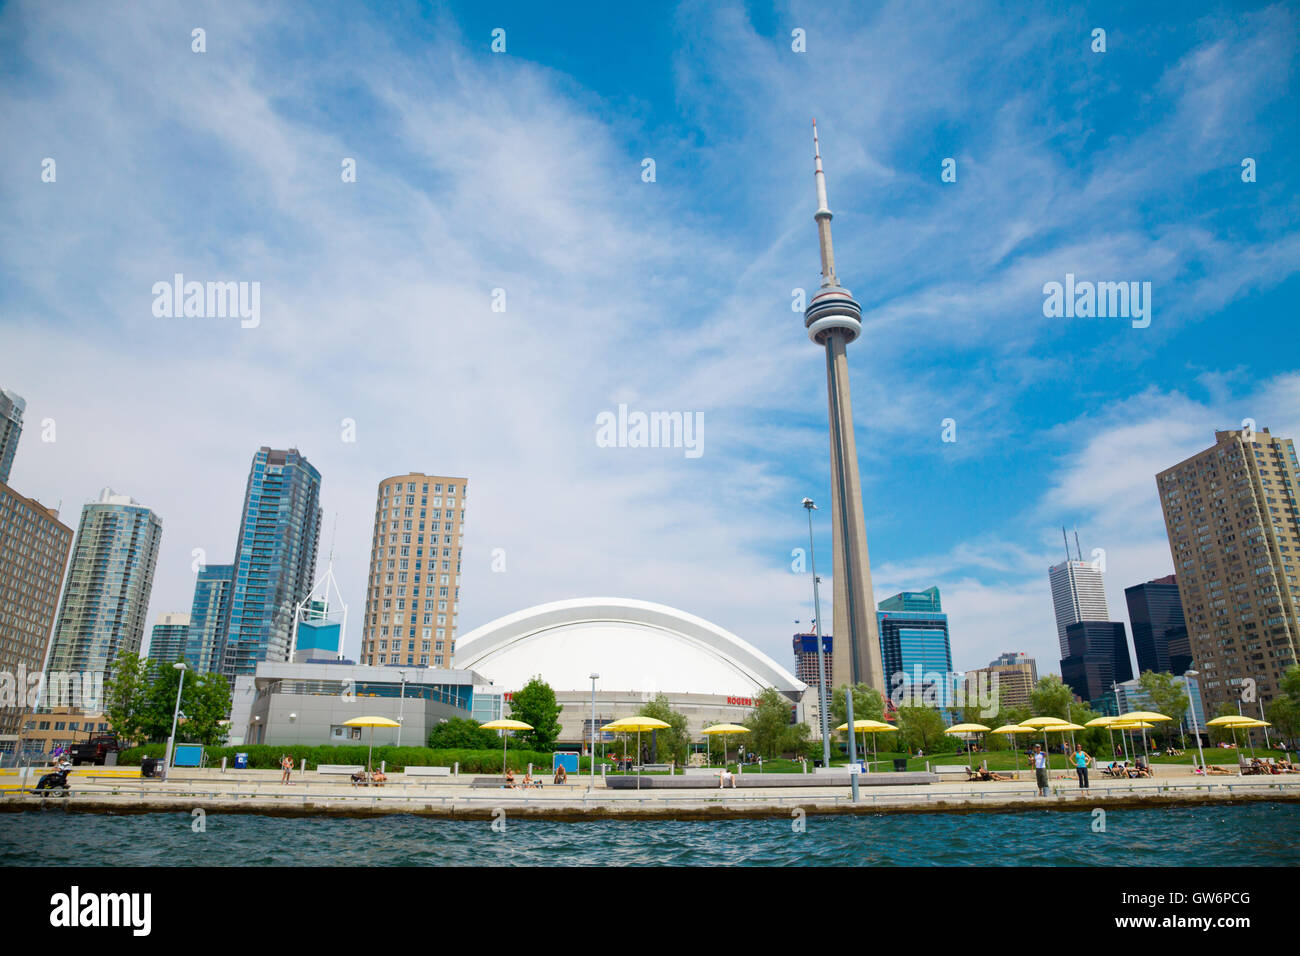 A view of Toronto from the harbor on a sunny day - Stock Image